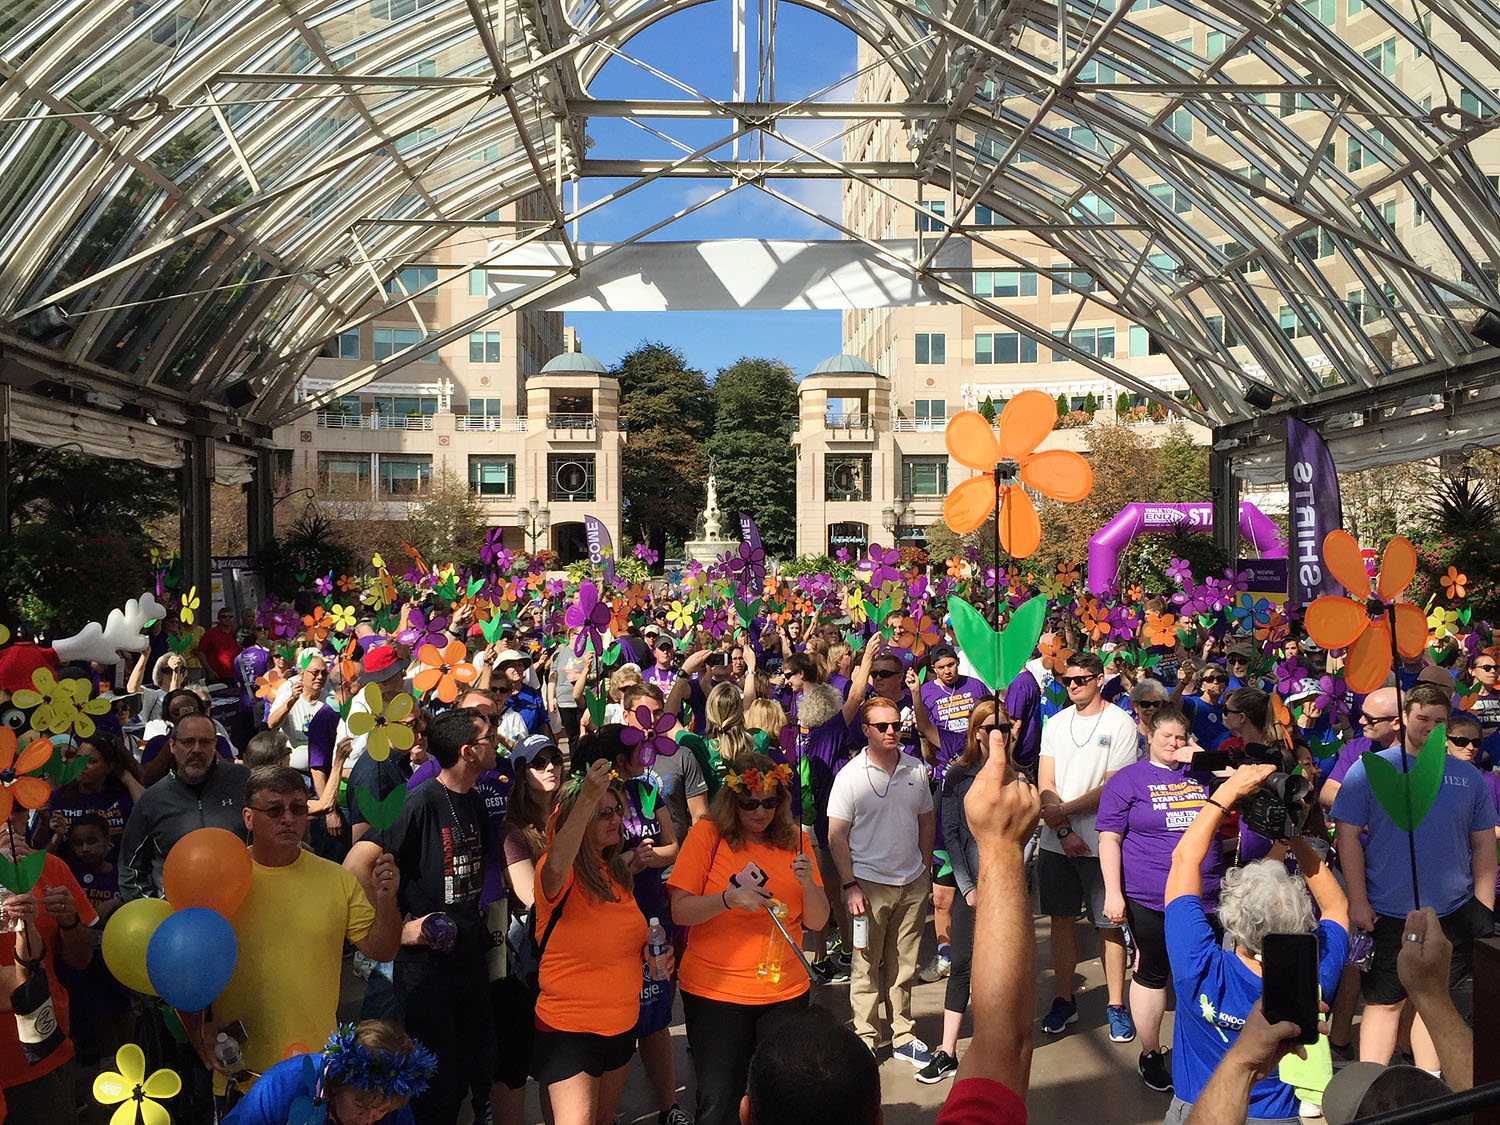 walk-to-end-alzheimers-reston-town-center-01